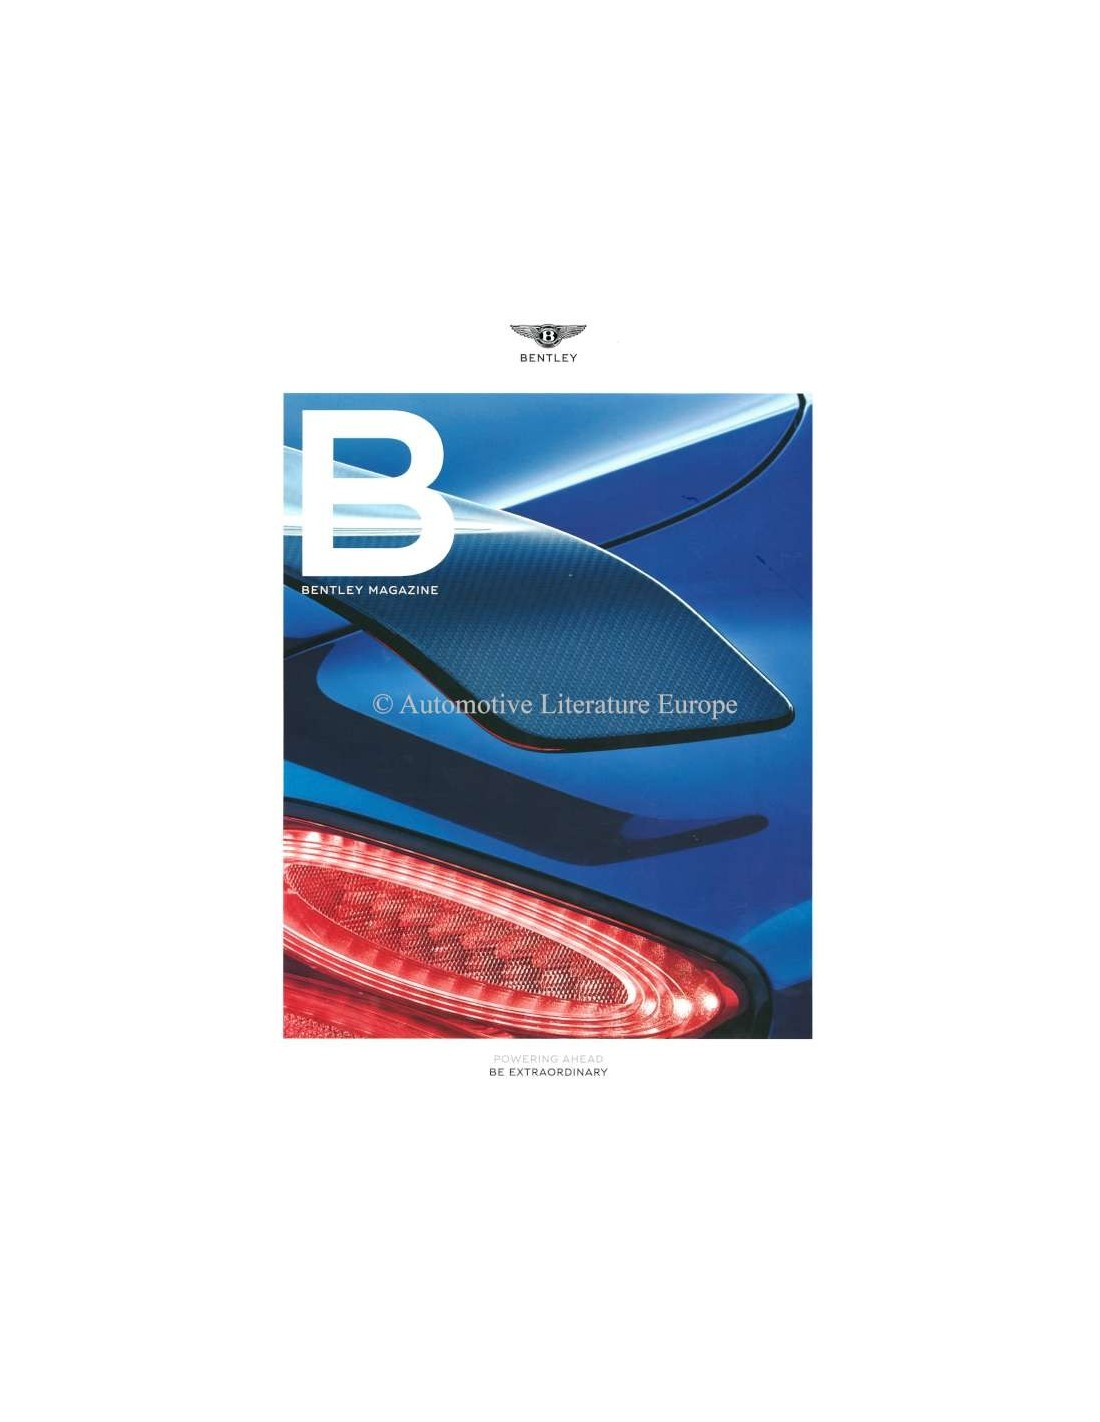 bentley flying reviews european front magazine new cars subscription car spur